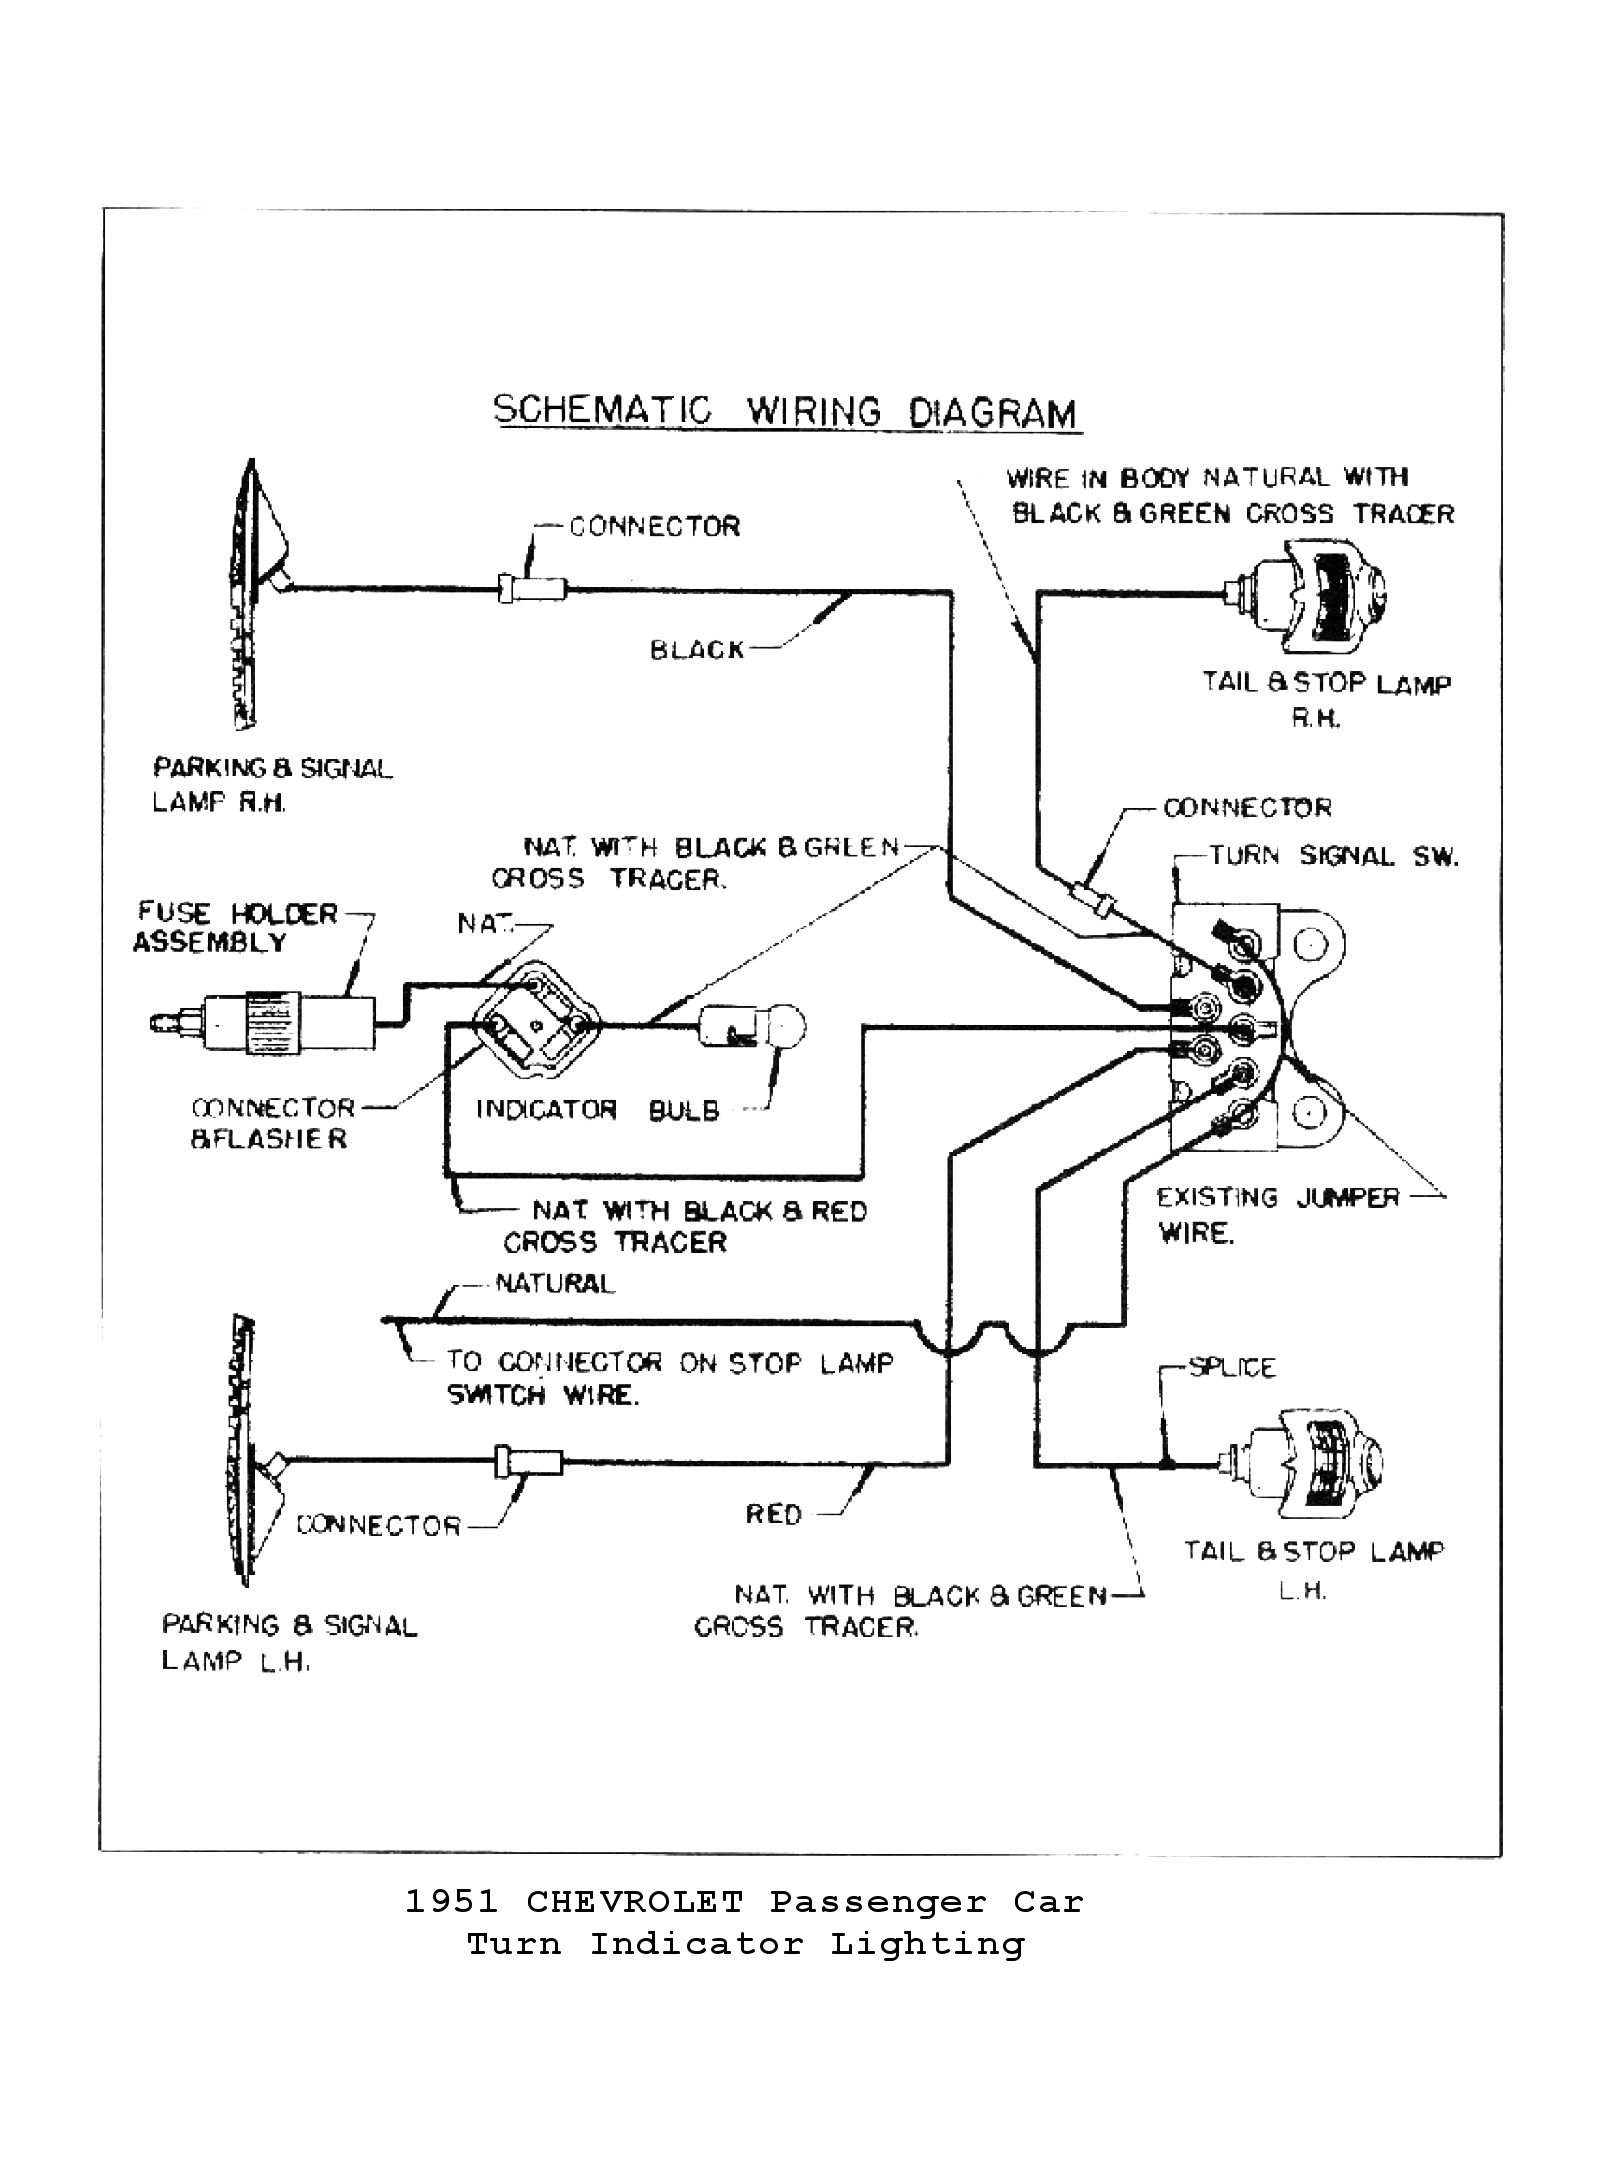 5152turnsignals chevy wiring diagrams gm turn signal wiring diagram at crackthecode.co